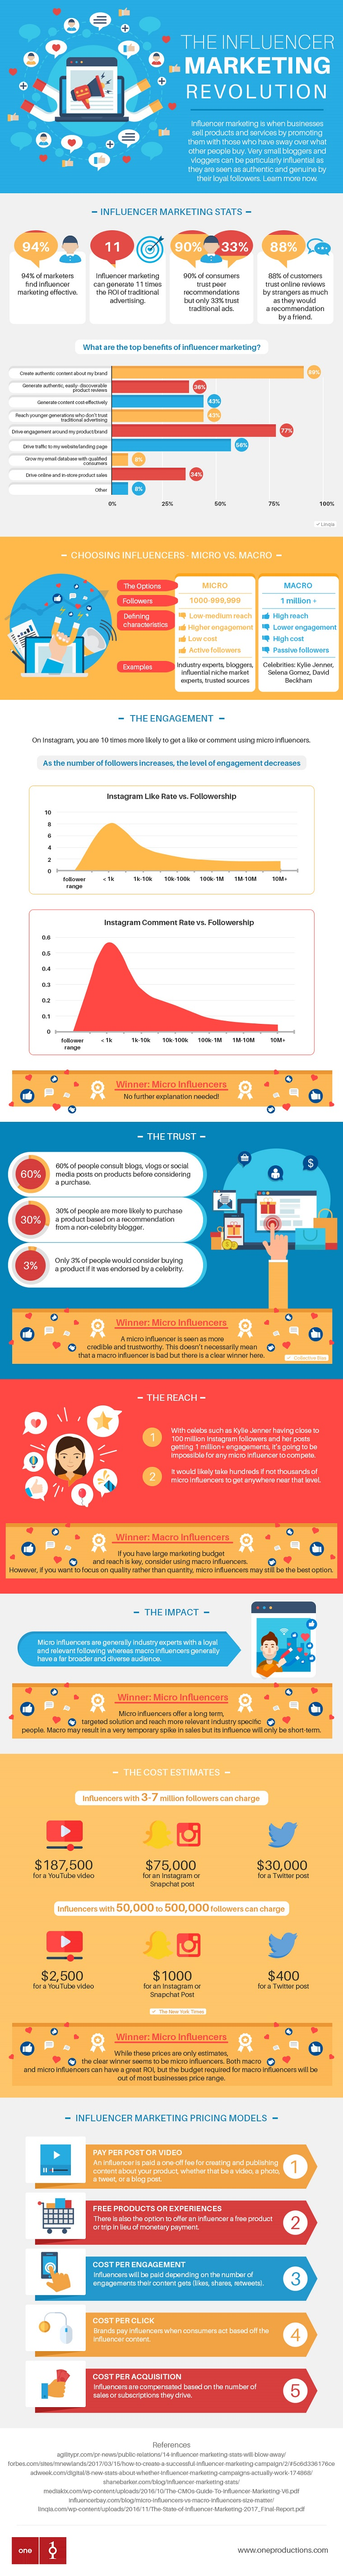 The Influencer Markeing Revolution (Infographic)